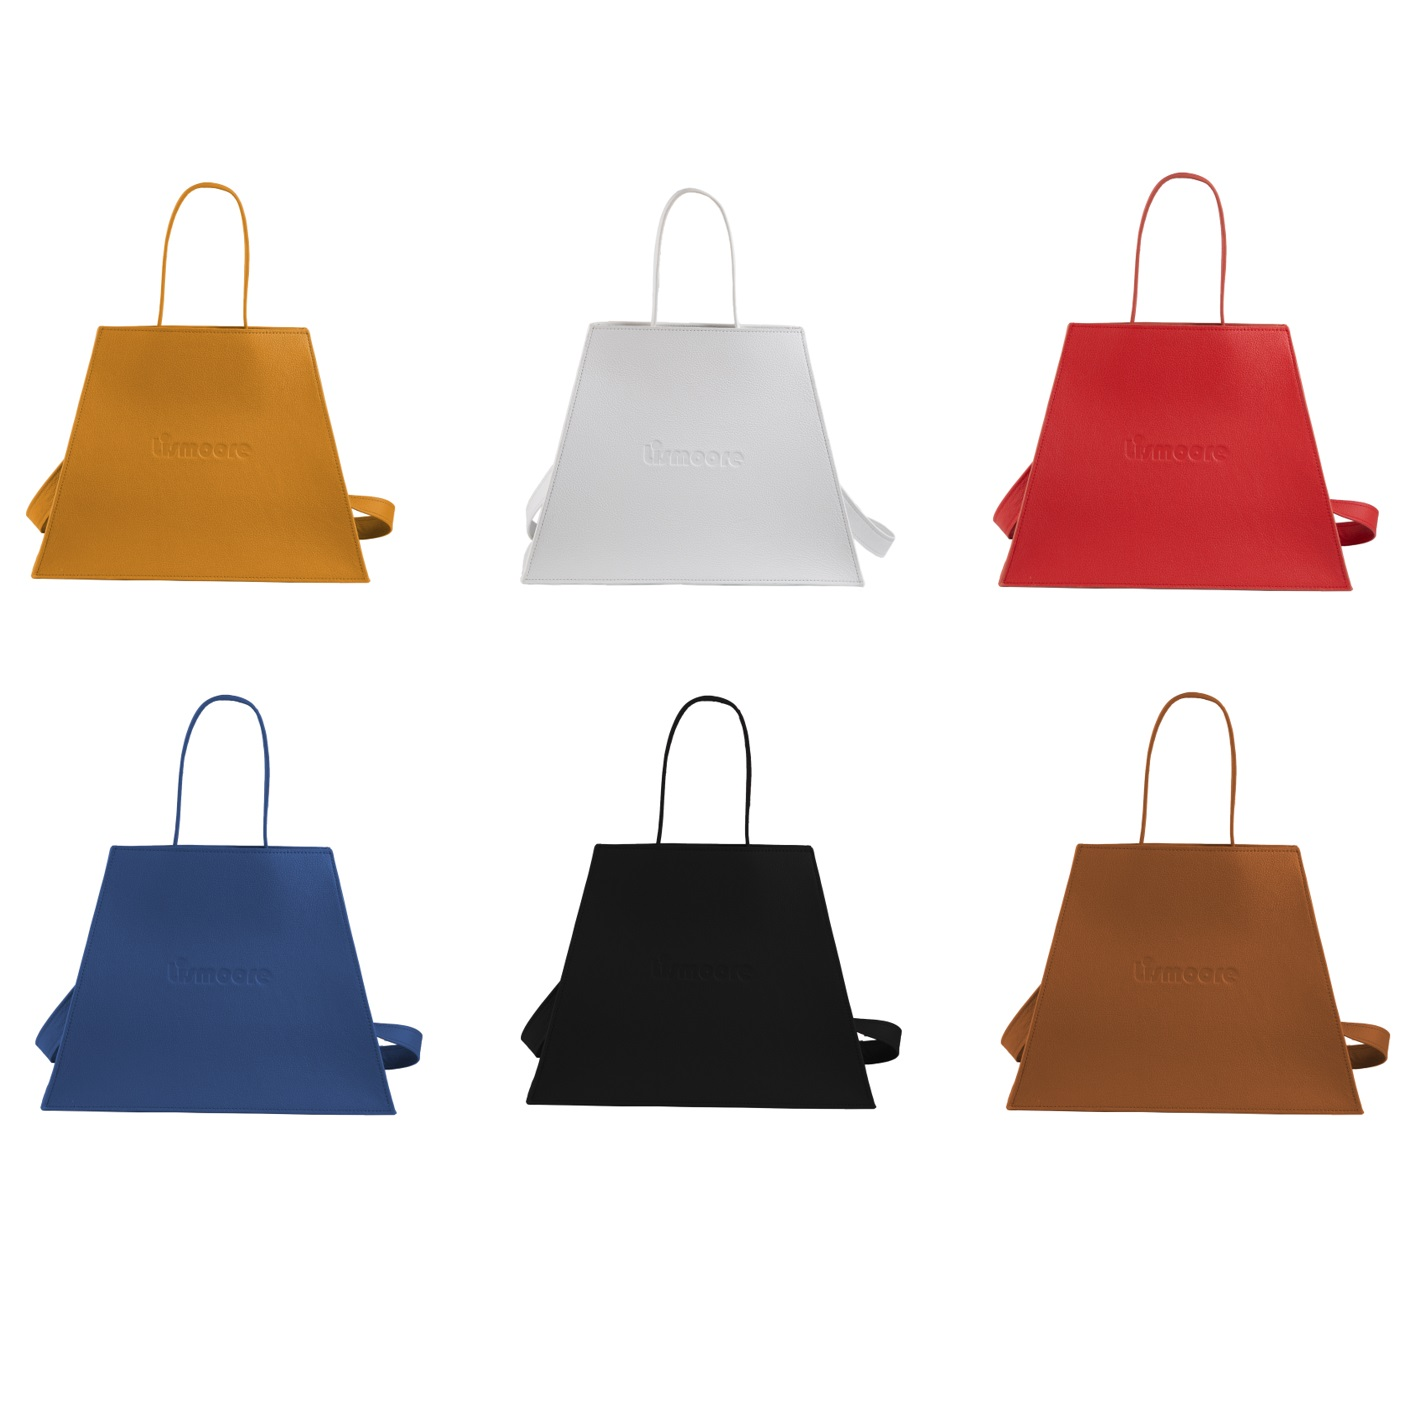 Ismin in six leather colors